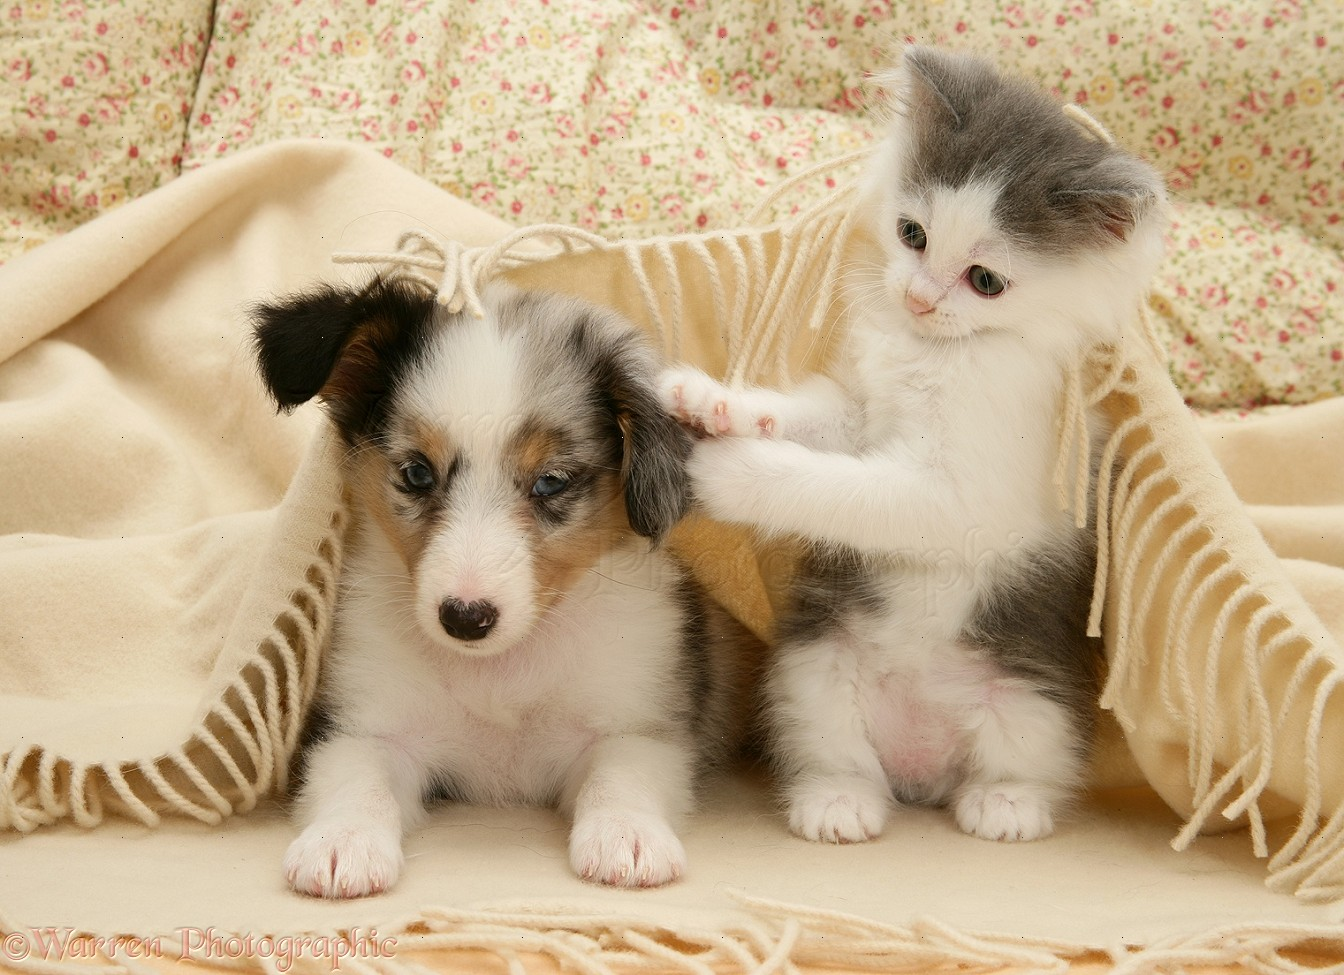 Pets: Playful kitten and Sheltie pup under a blanket photo ...